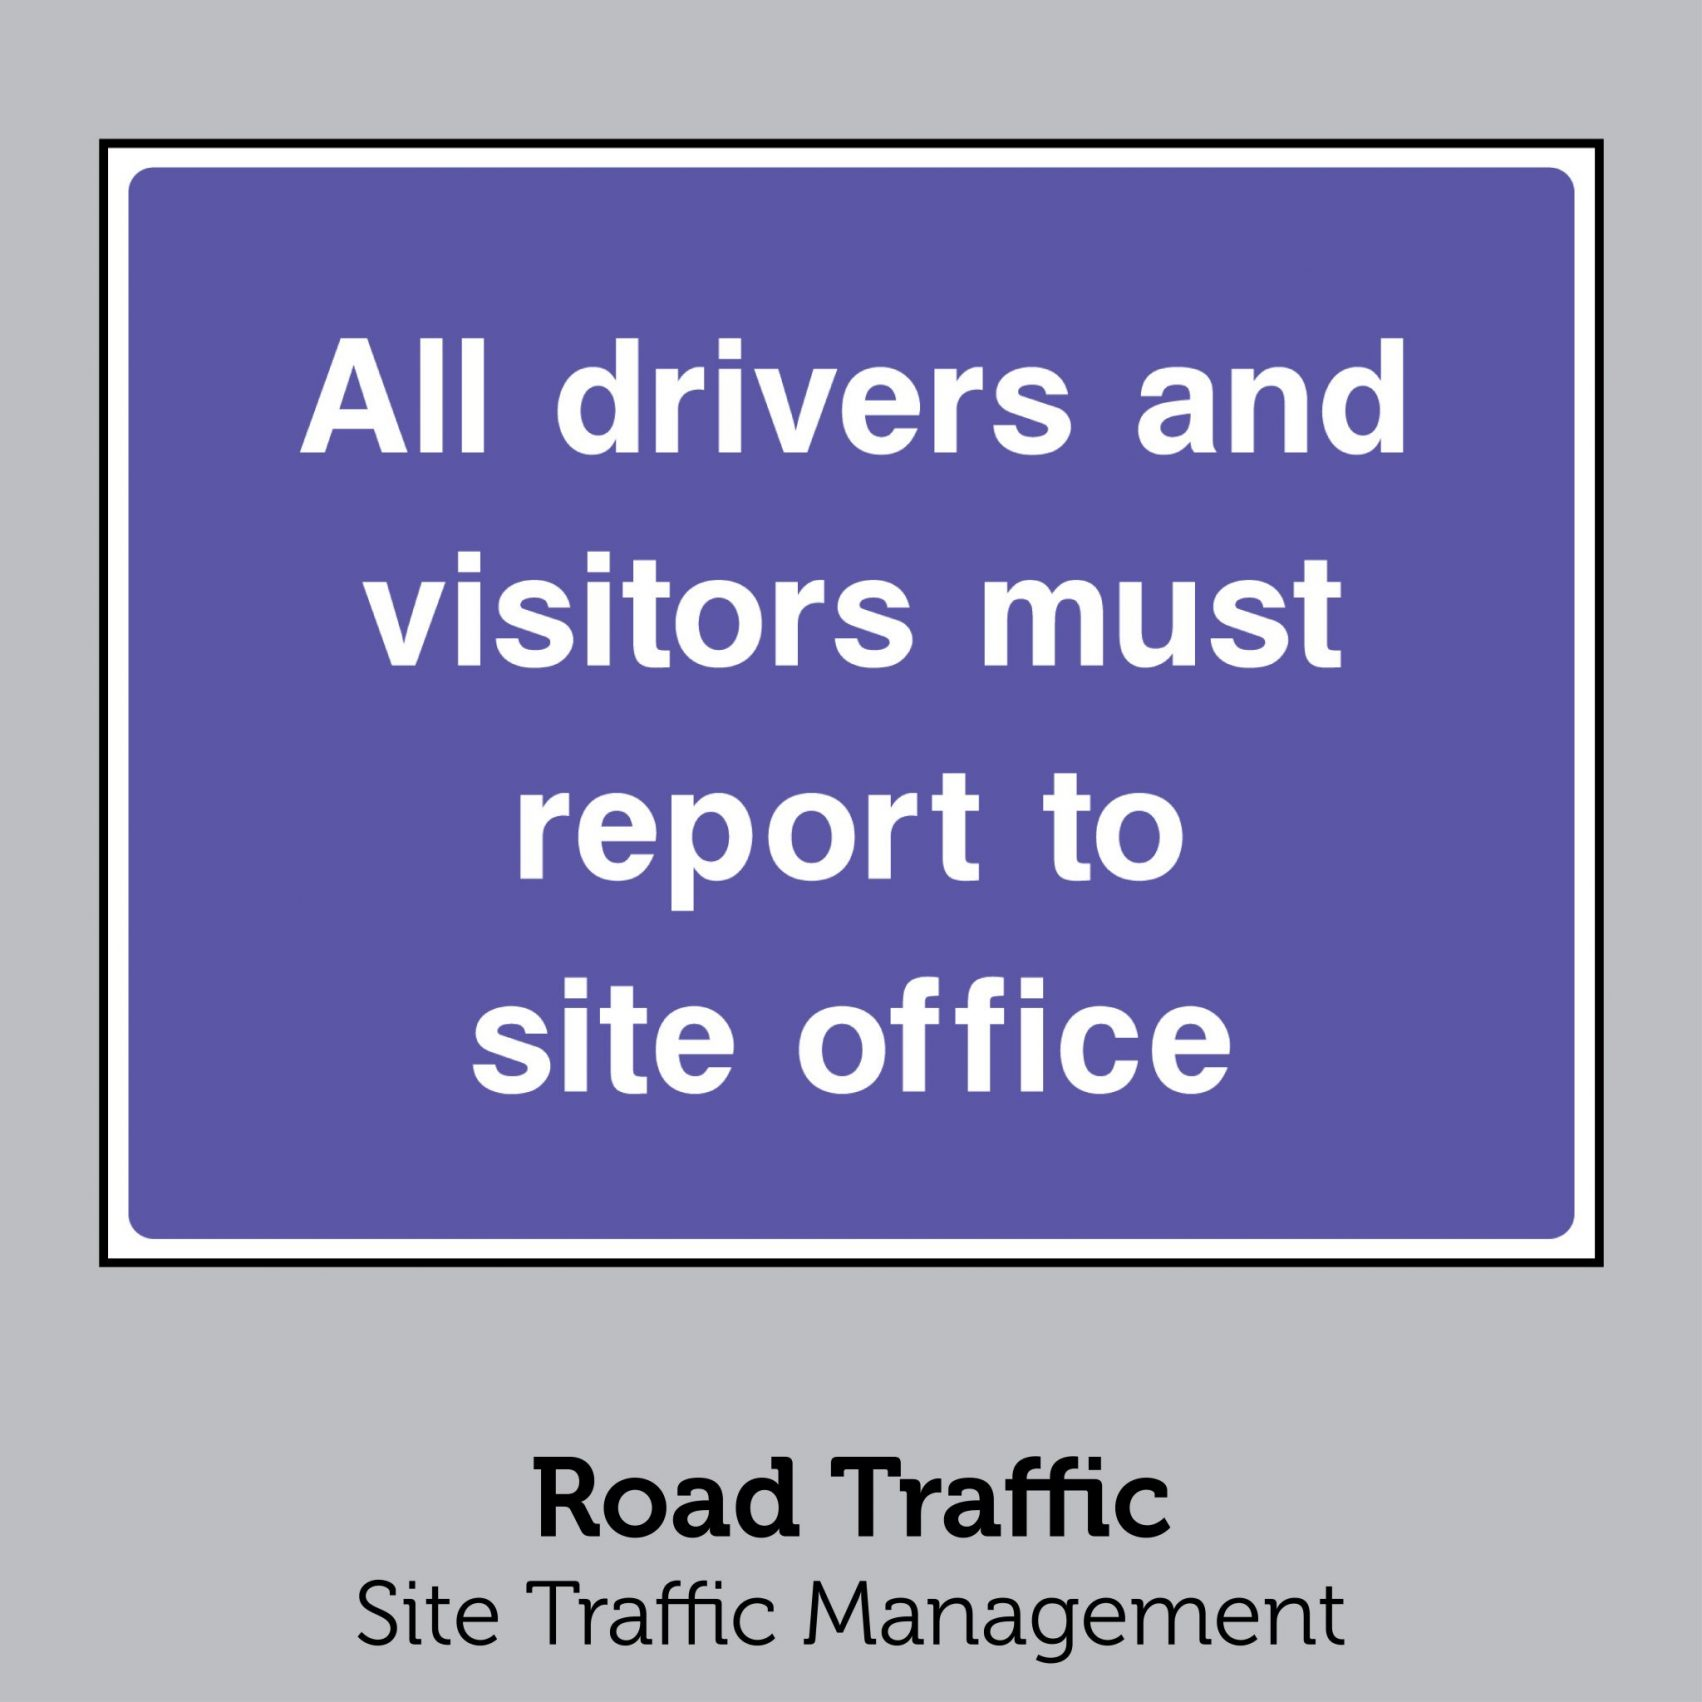 Road Traffic - Site Traffic Management